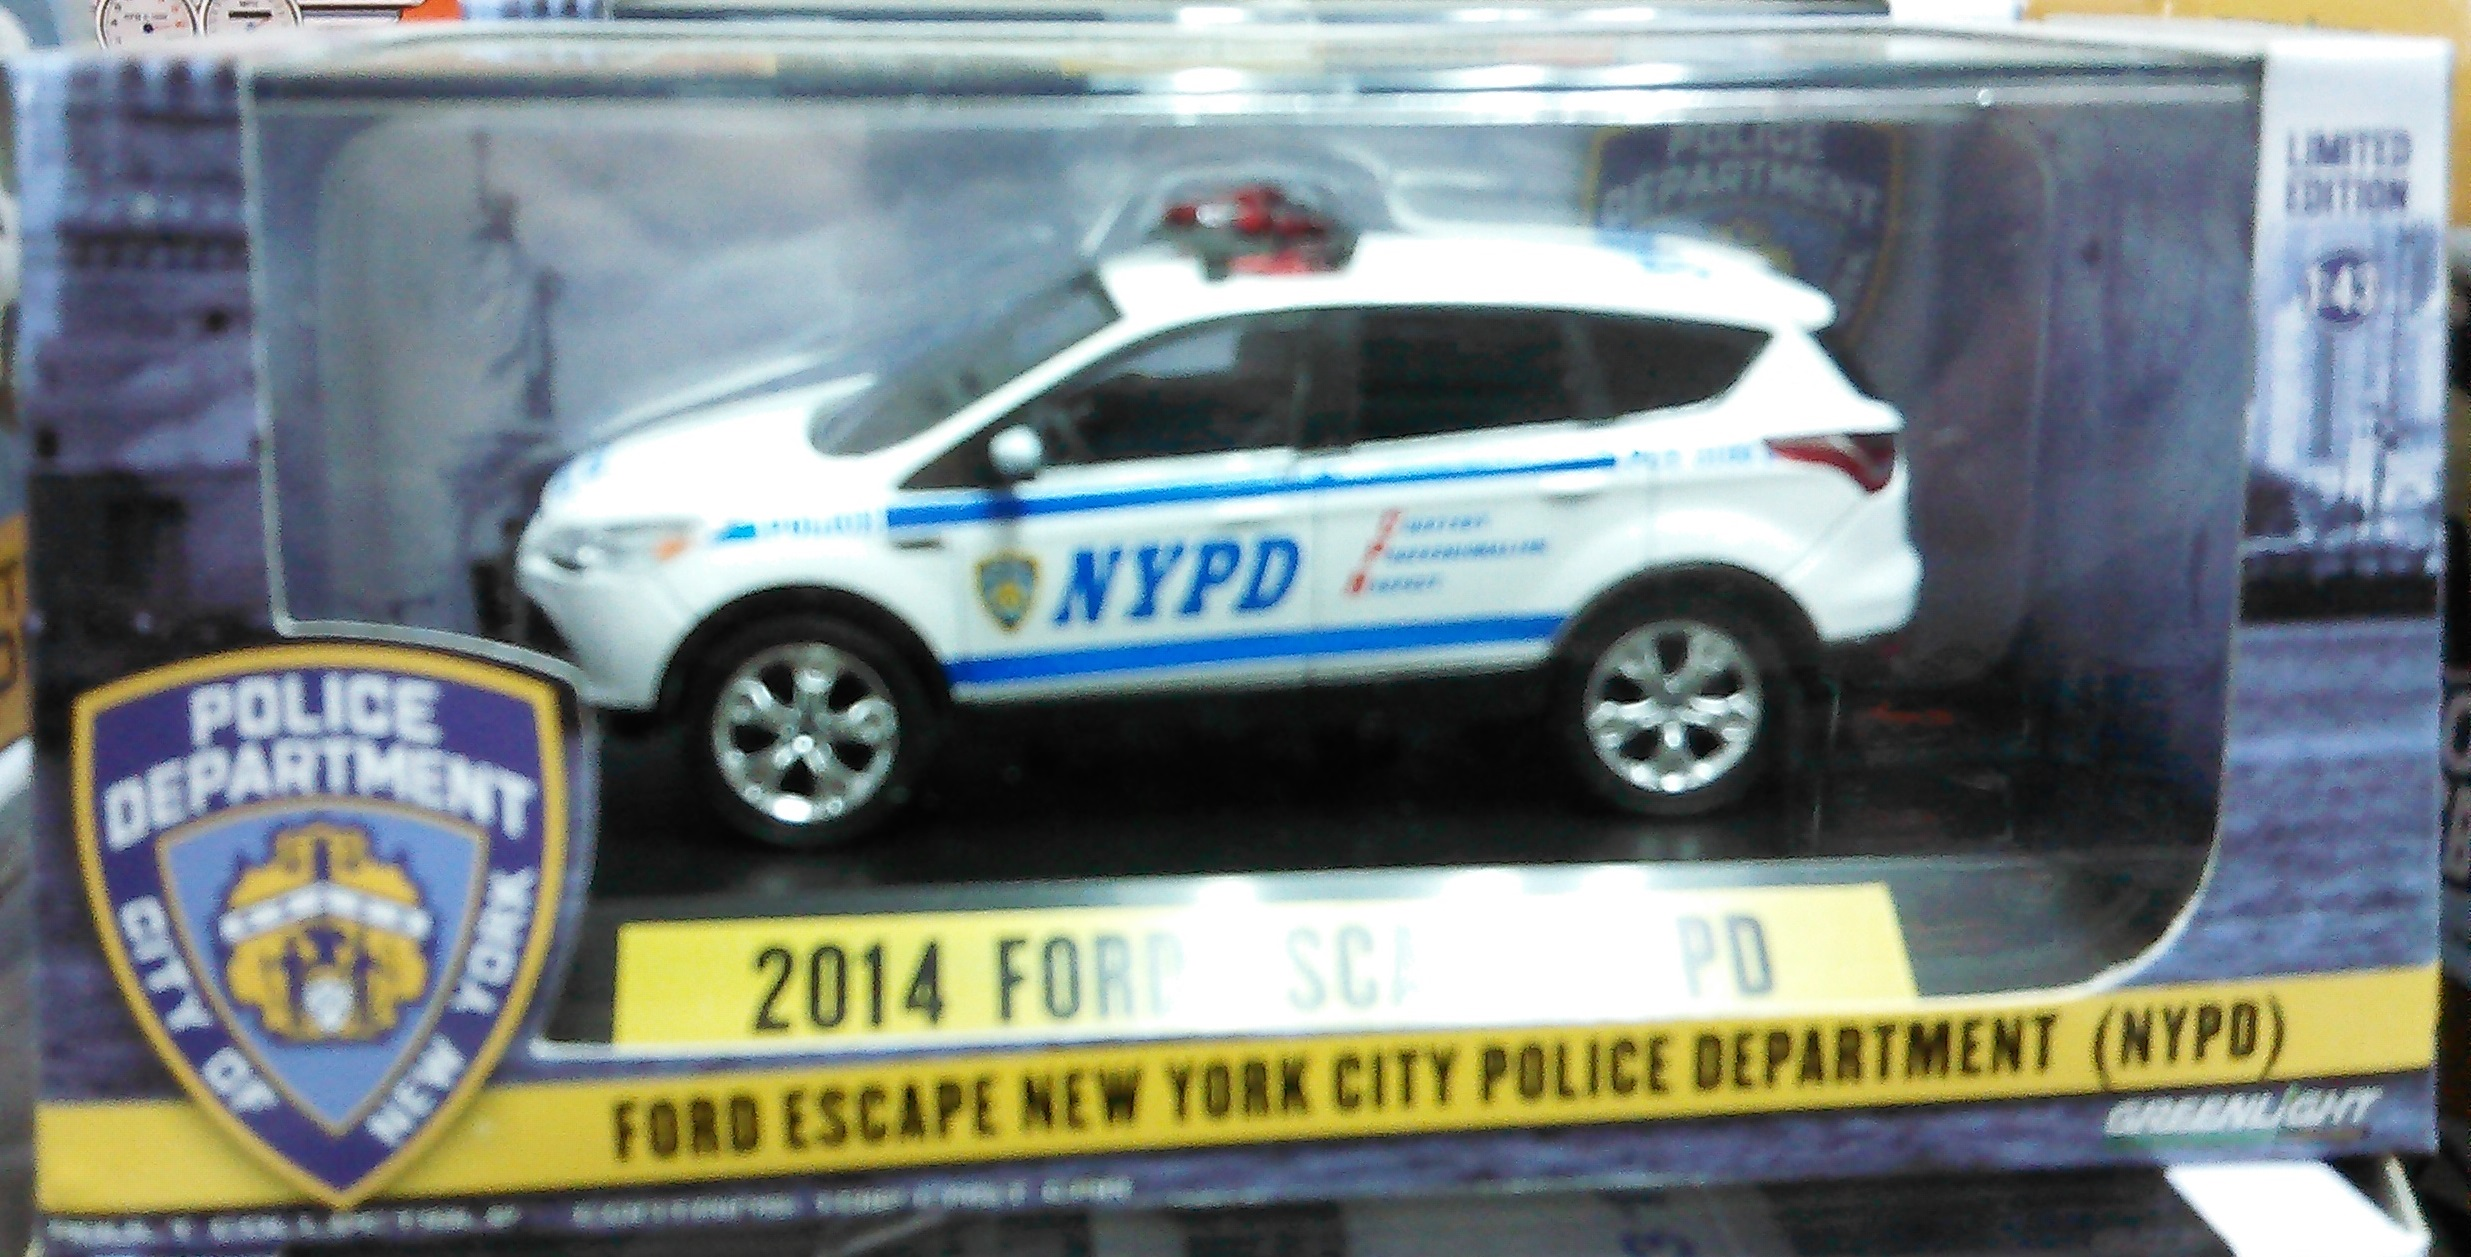 2014 Ford Escape NYPD Police SUV